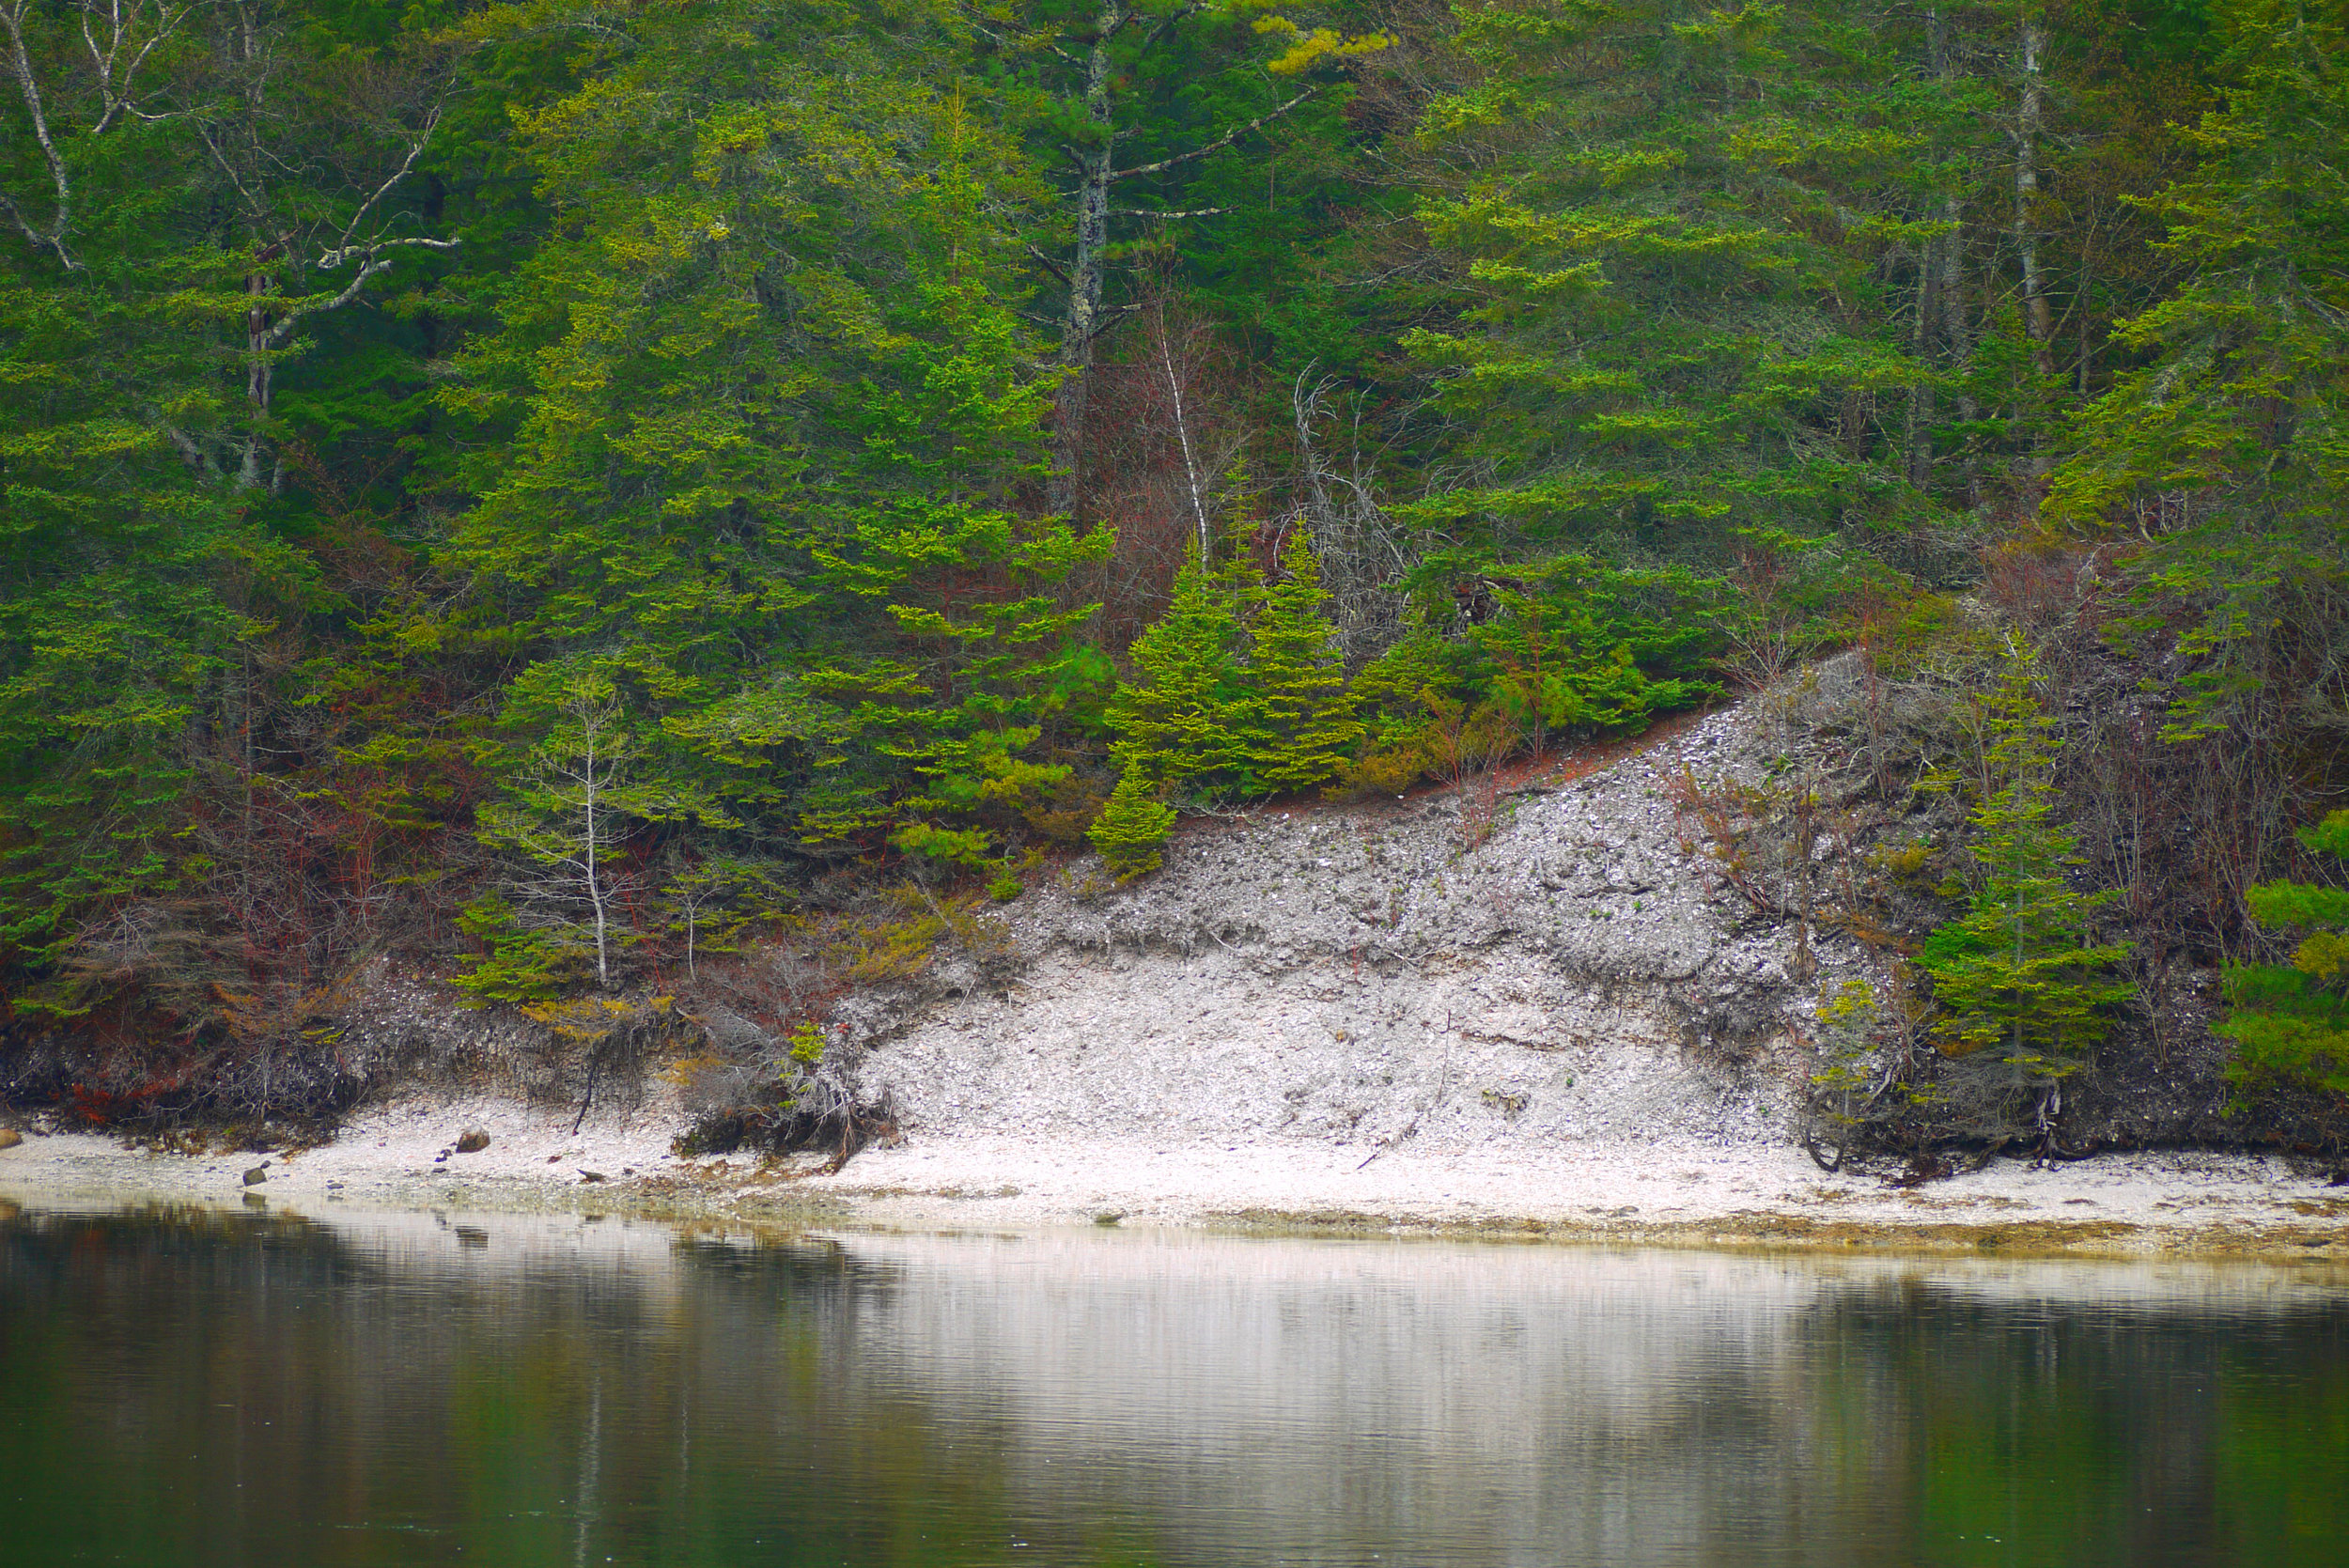 View of the Glidden Midden from the opposite shore